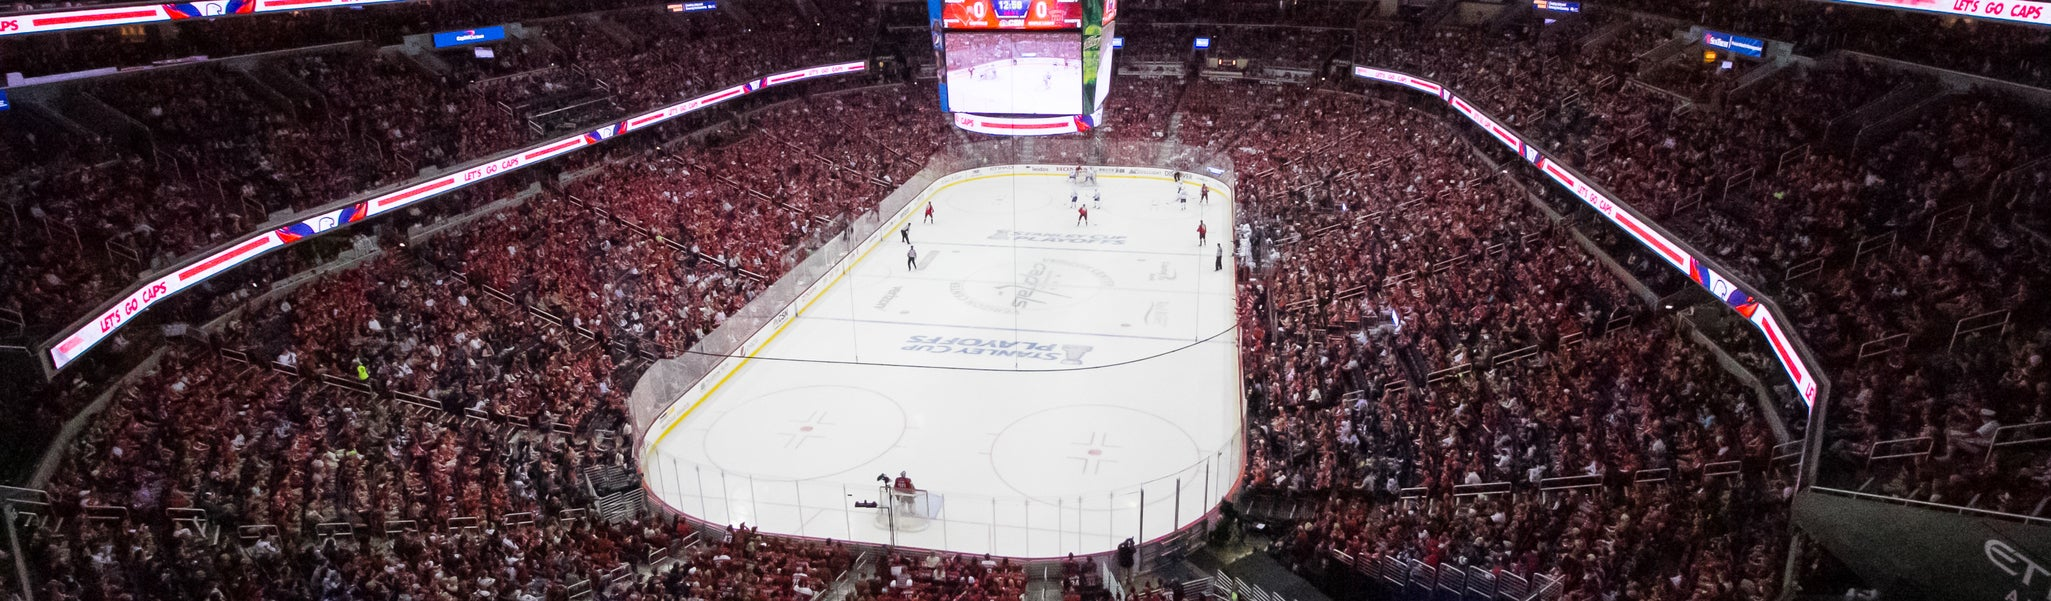 Seat view from Mezzanine End 427 at Capital One Arena